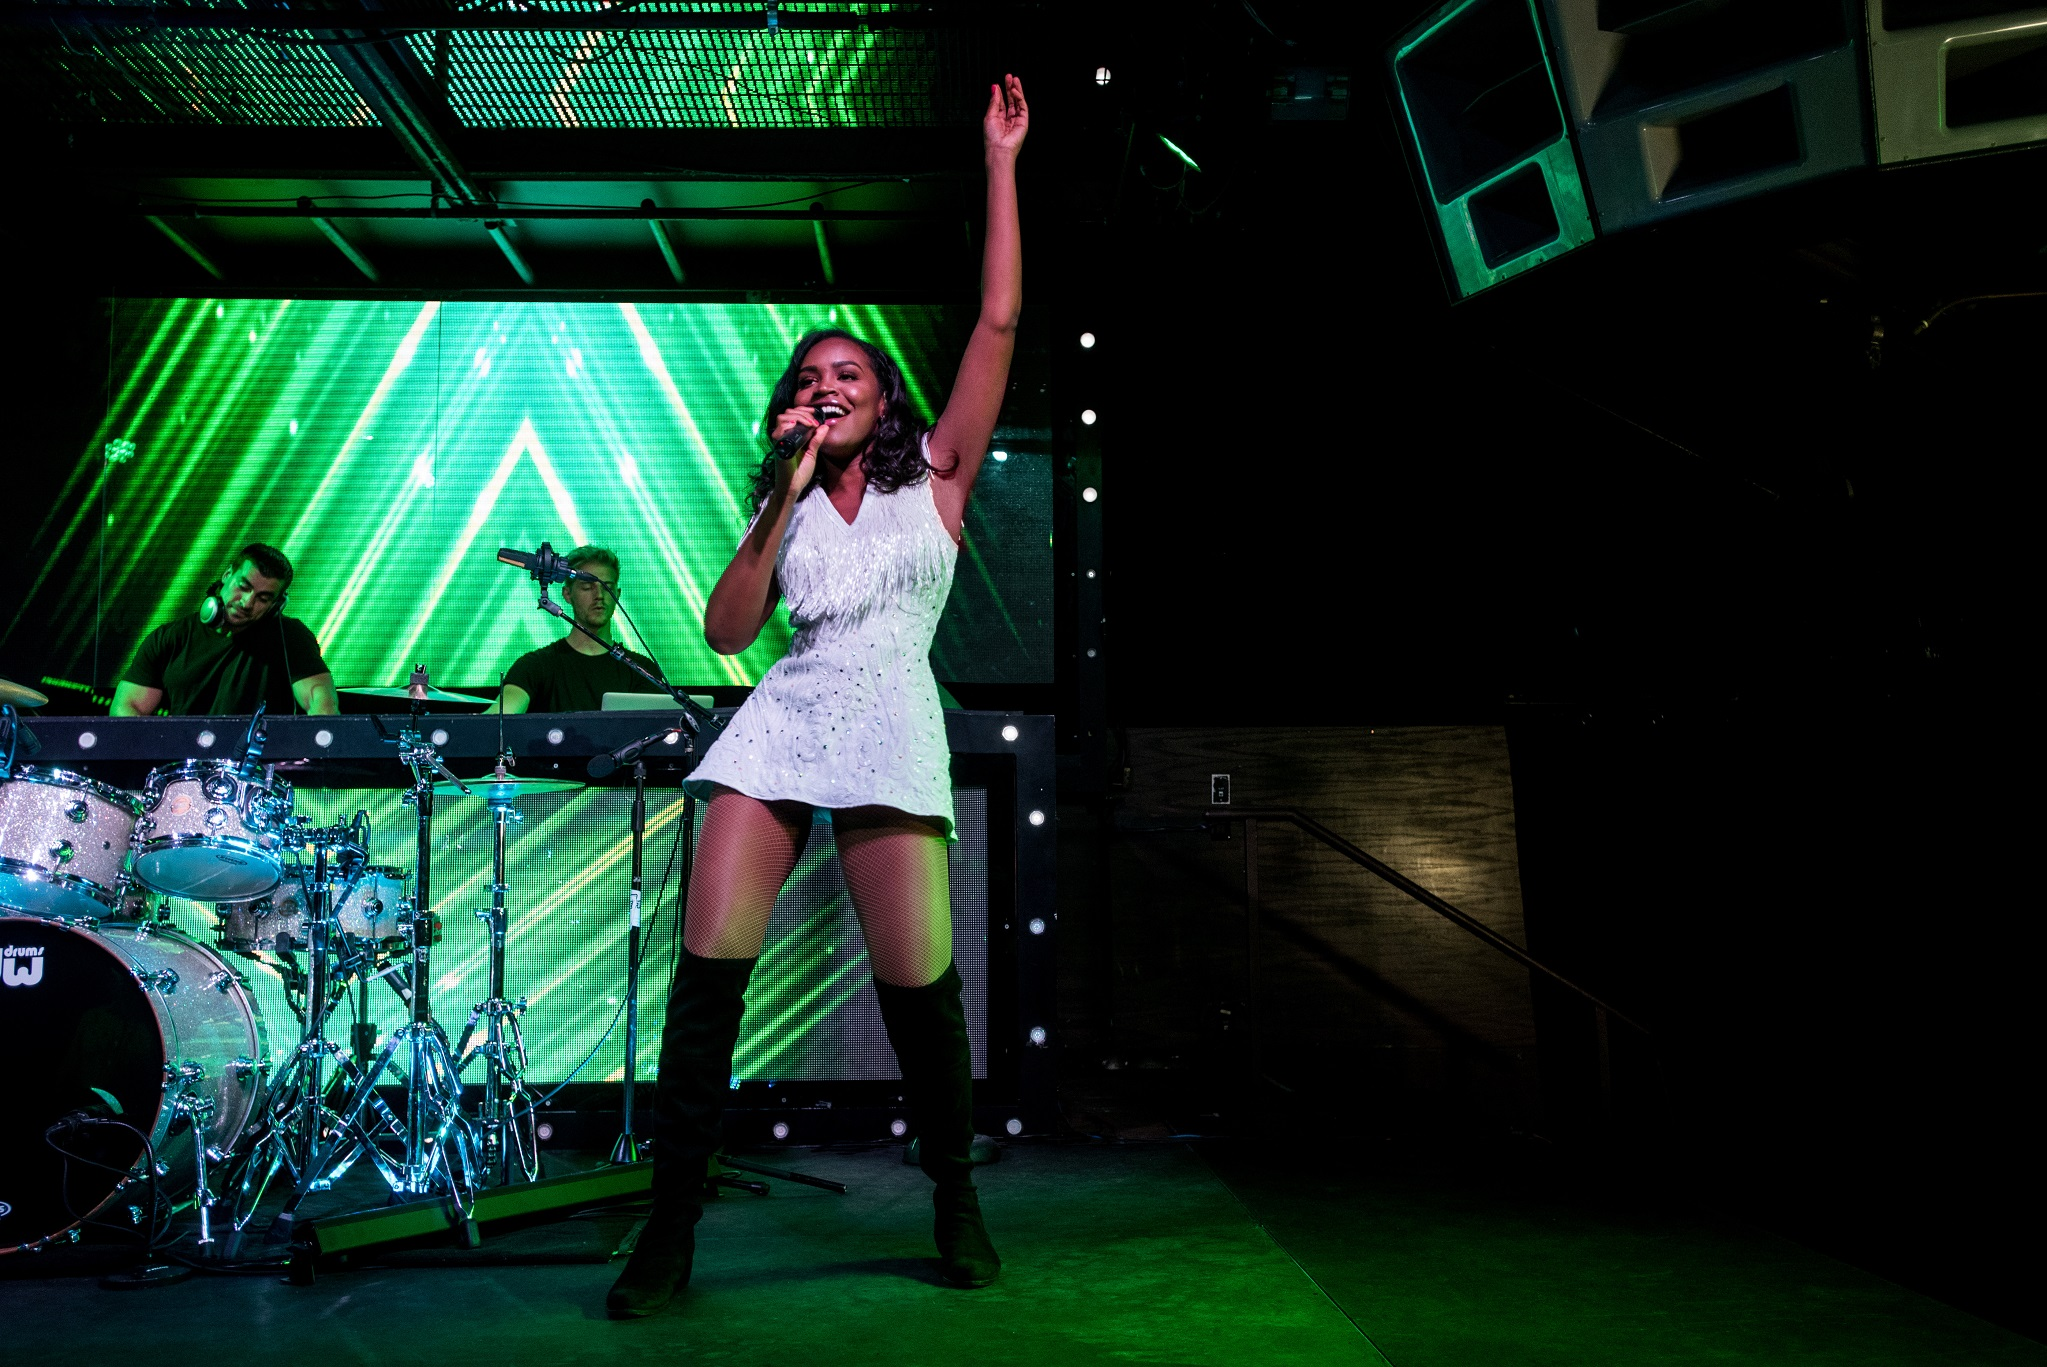 Glorious-Singer-Livetronica Drummer-Producer-Songwriter-Marquee-Nightclub-Video-New York-NY-32lr.jpg